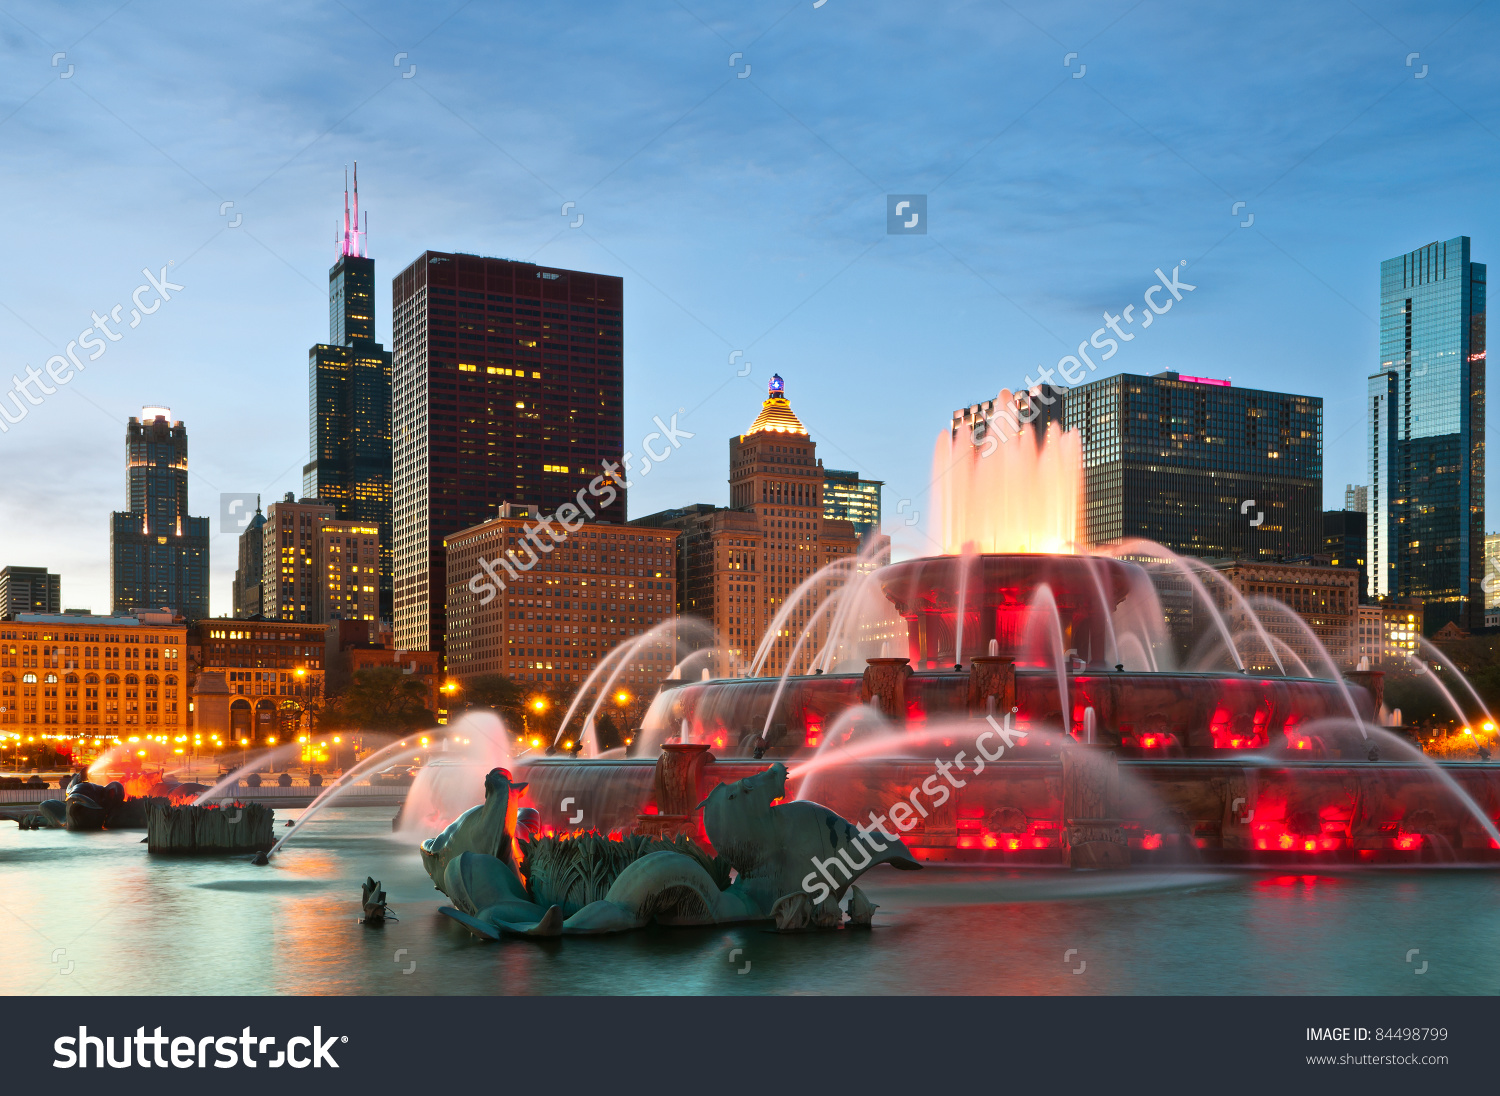 Buckingham Fountain Grant Park Chicago Illinois Stock Photo.